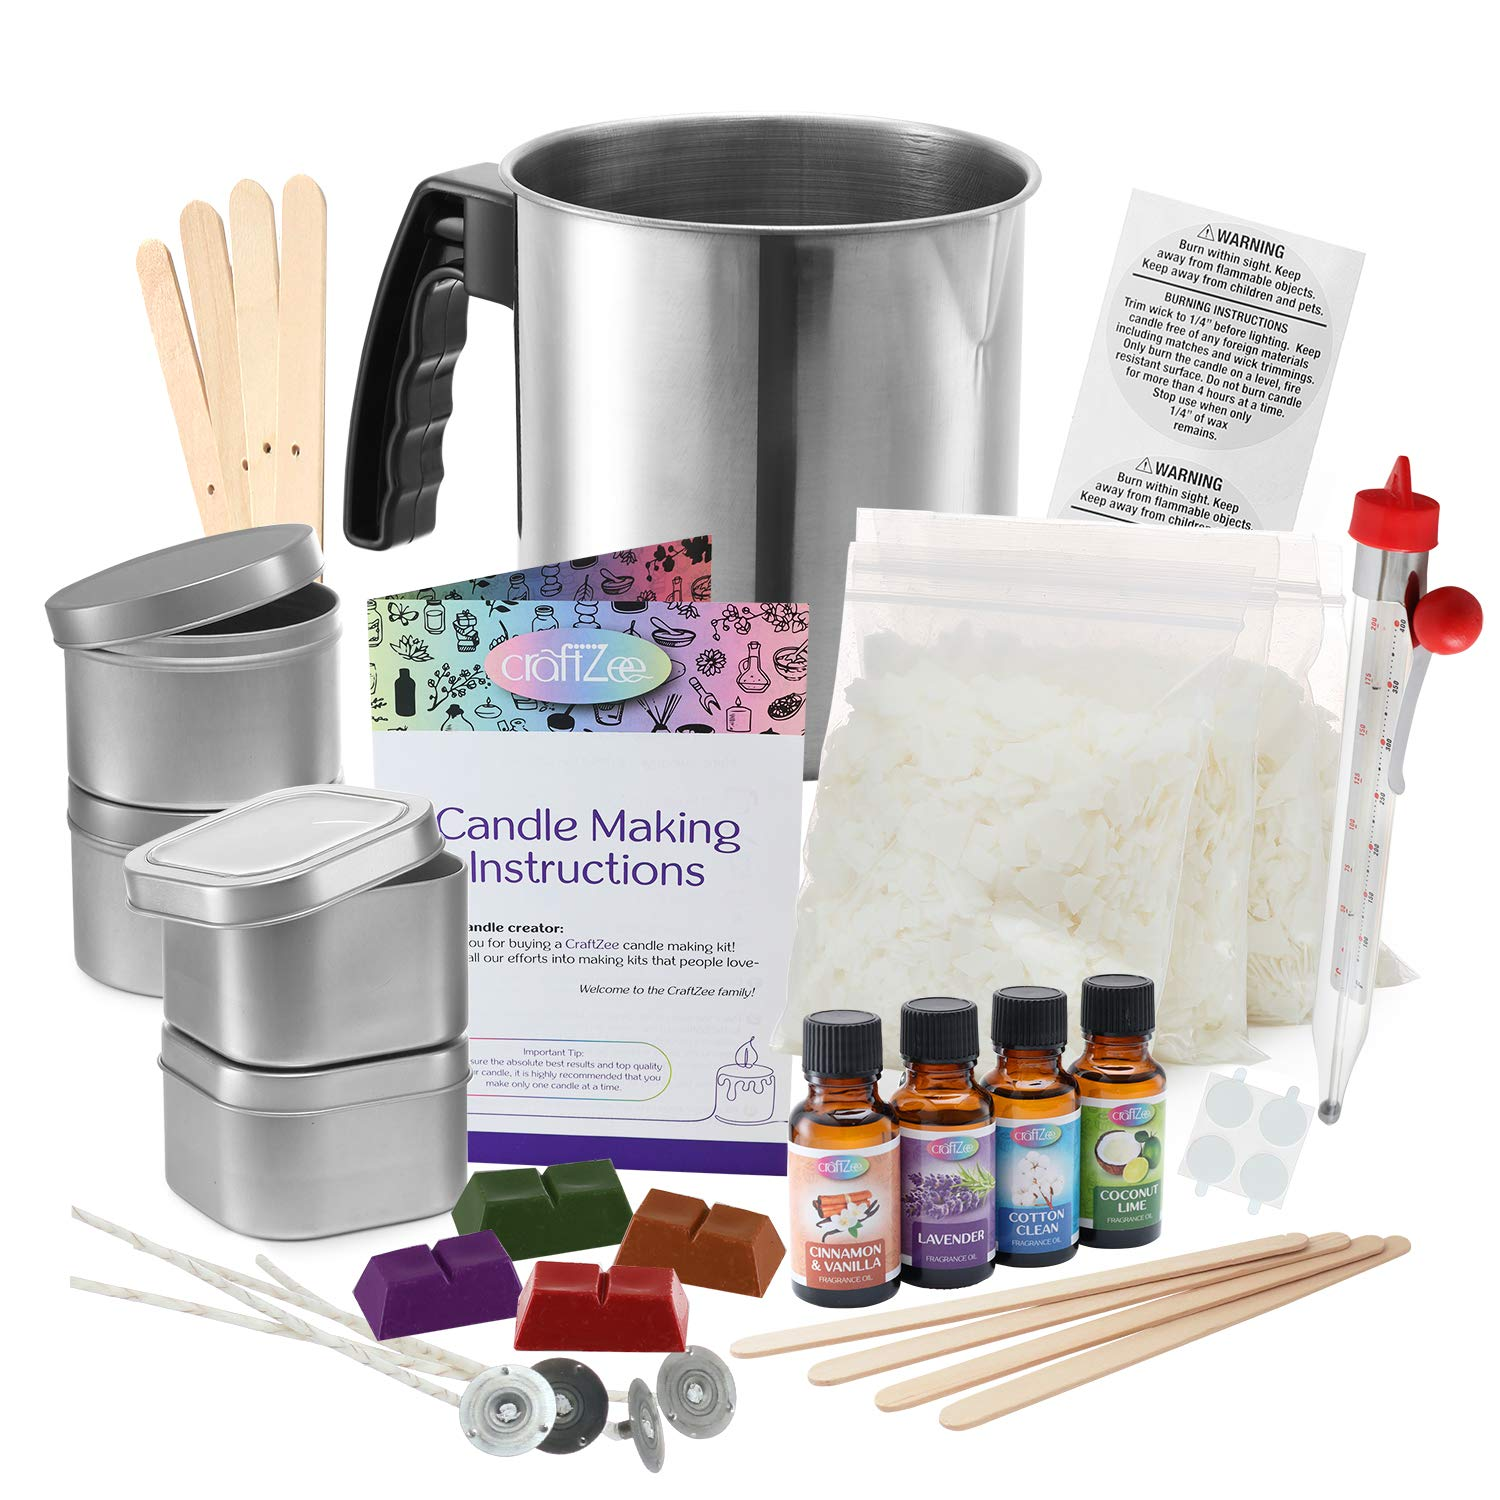 Complete DIY Candle Making Supplies